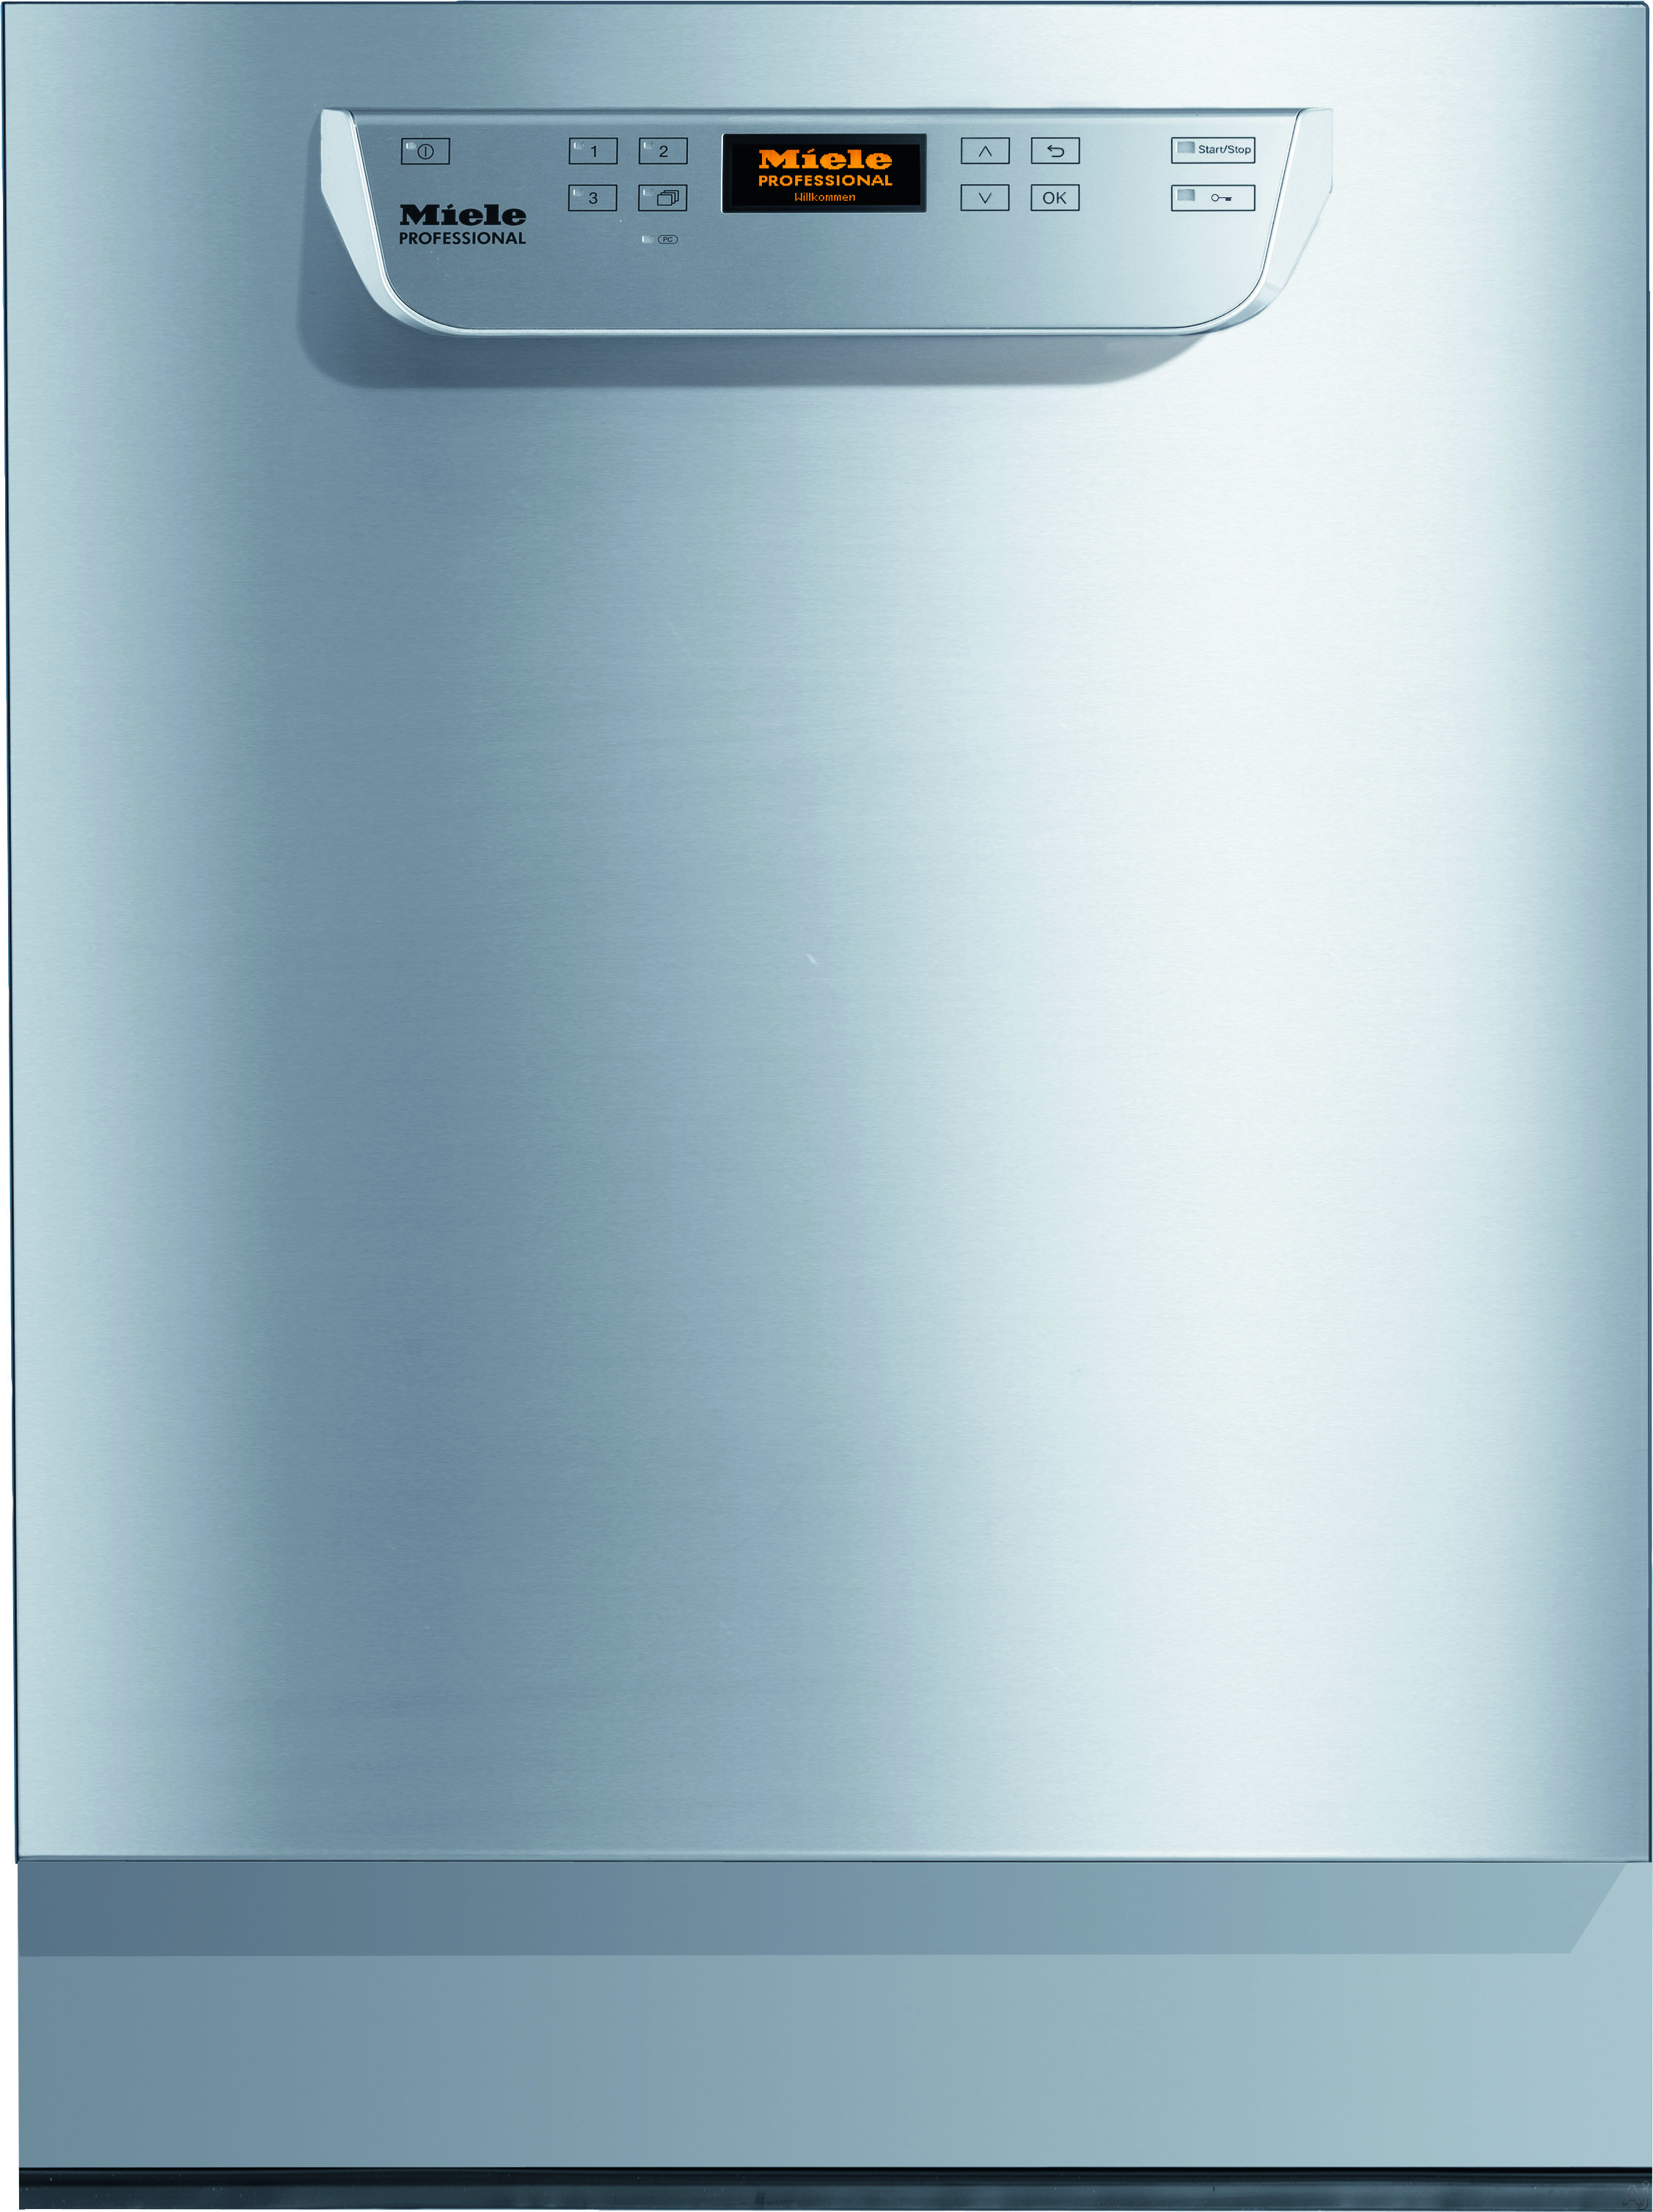 Miele Professional PG8061 Full Console Dishwasher with 3 Cycles, 3 Sanitization Programs, Detergent Dispenser, Rinse Aid, Spray-Jet Steam Condenser and 57 dBA Sound Rating